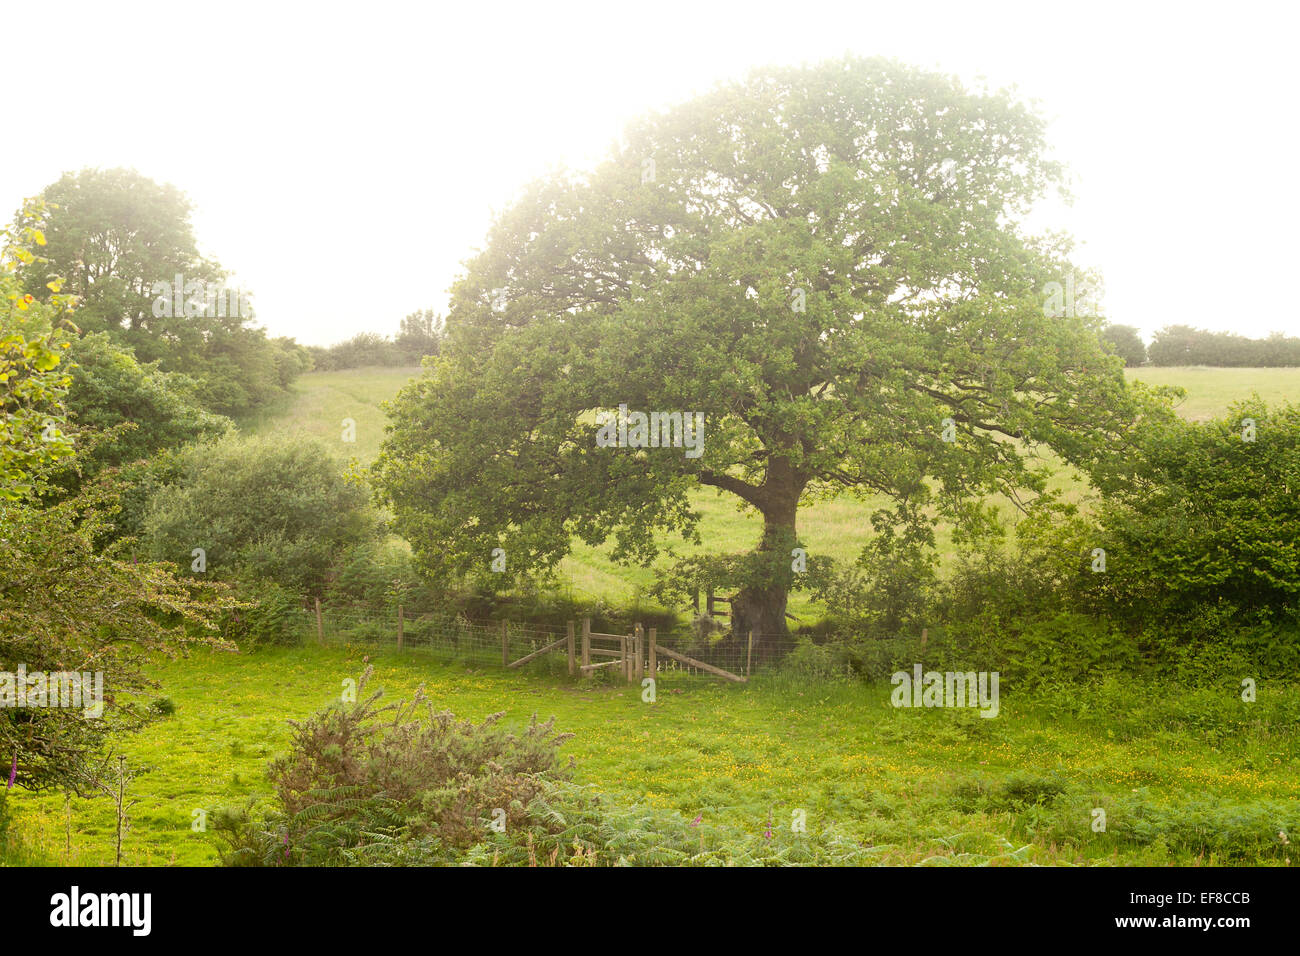 Ancient Oak tree at the entrance to Ty Canol Ancient Woodlands, Pembrokeshire, Wales - Stock Image